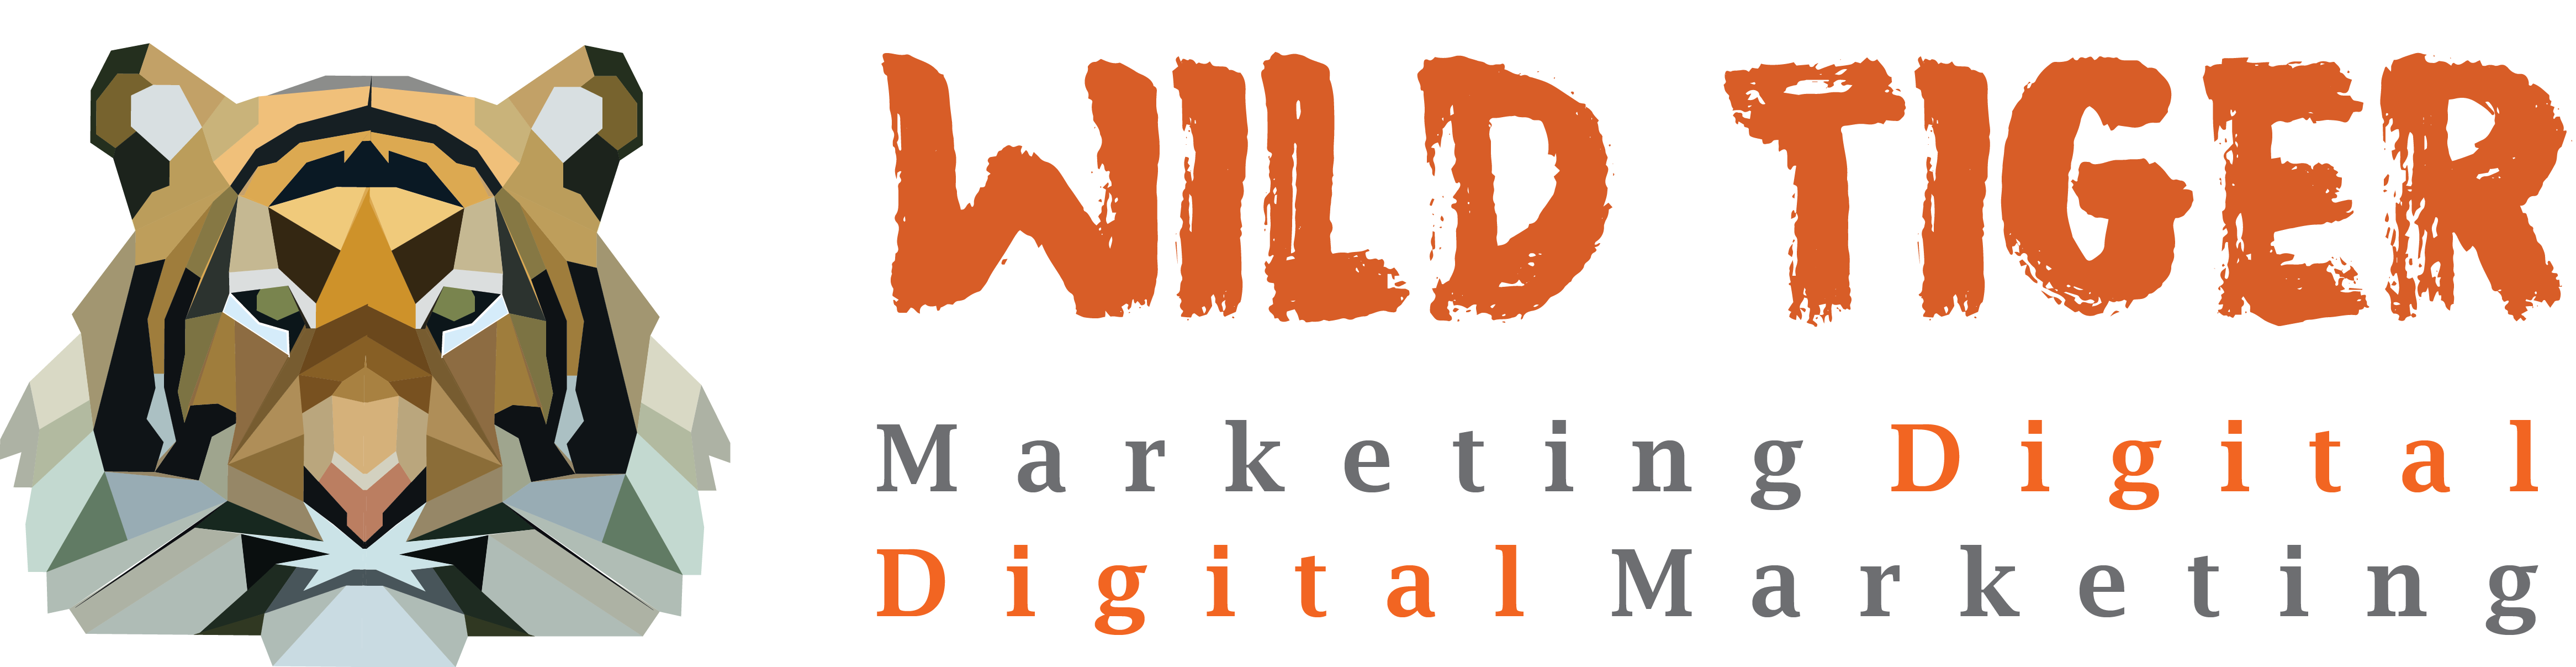 Wild Tiger Marketing